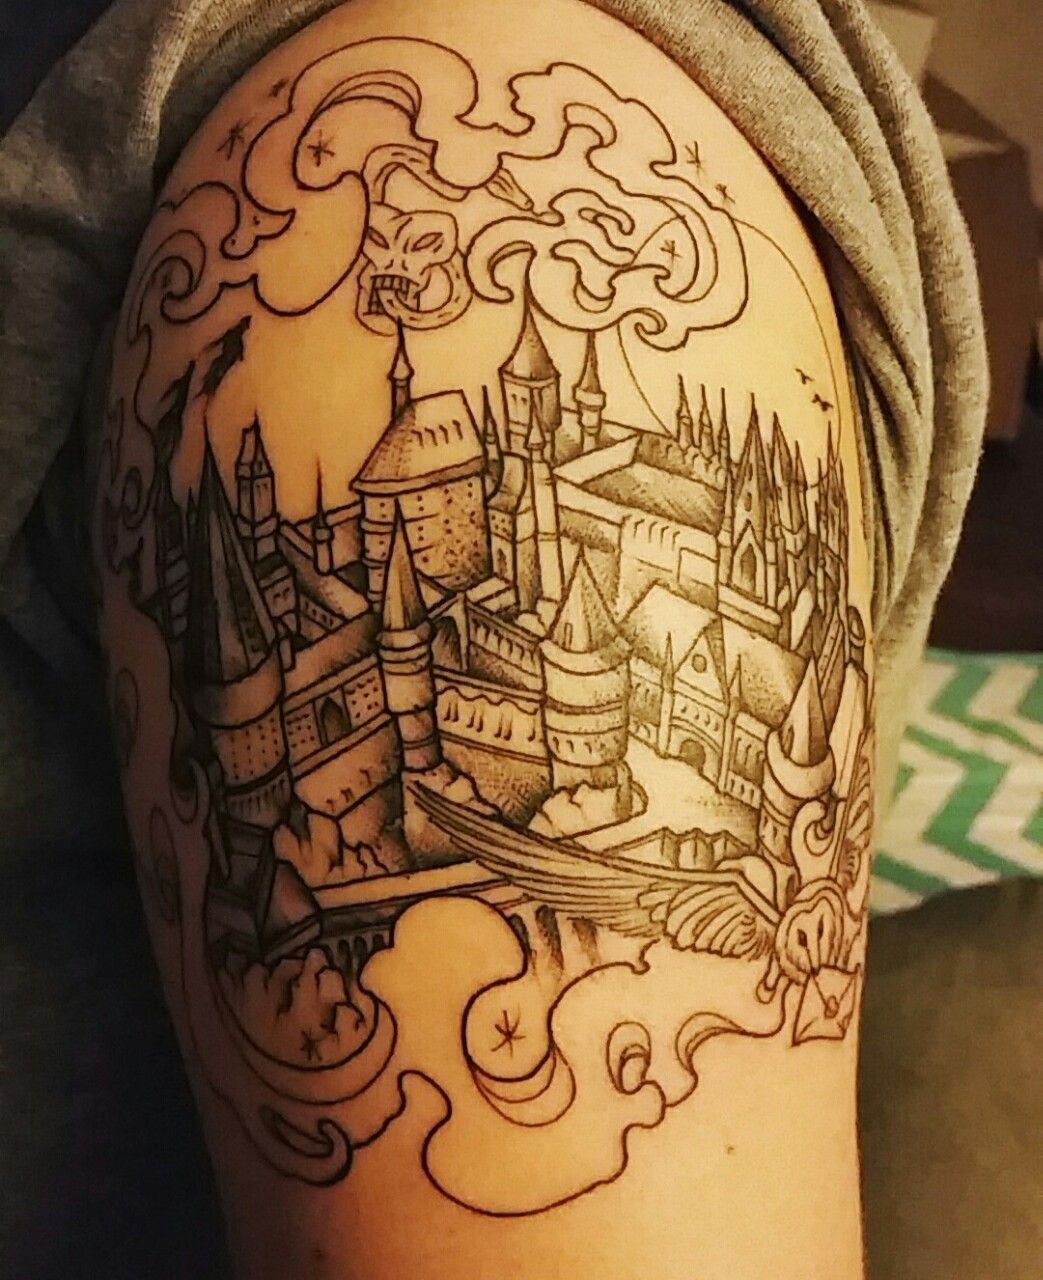 Henna tattoo charleston sc - Beginning Of A Harry Potter Sleeve By Betsy Butler At Roses And Ruins Charleston Sc Holy Crap I Love This